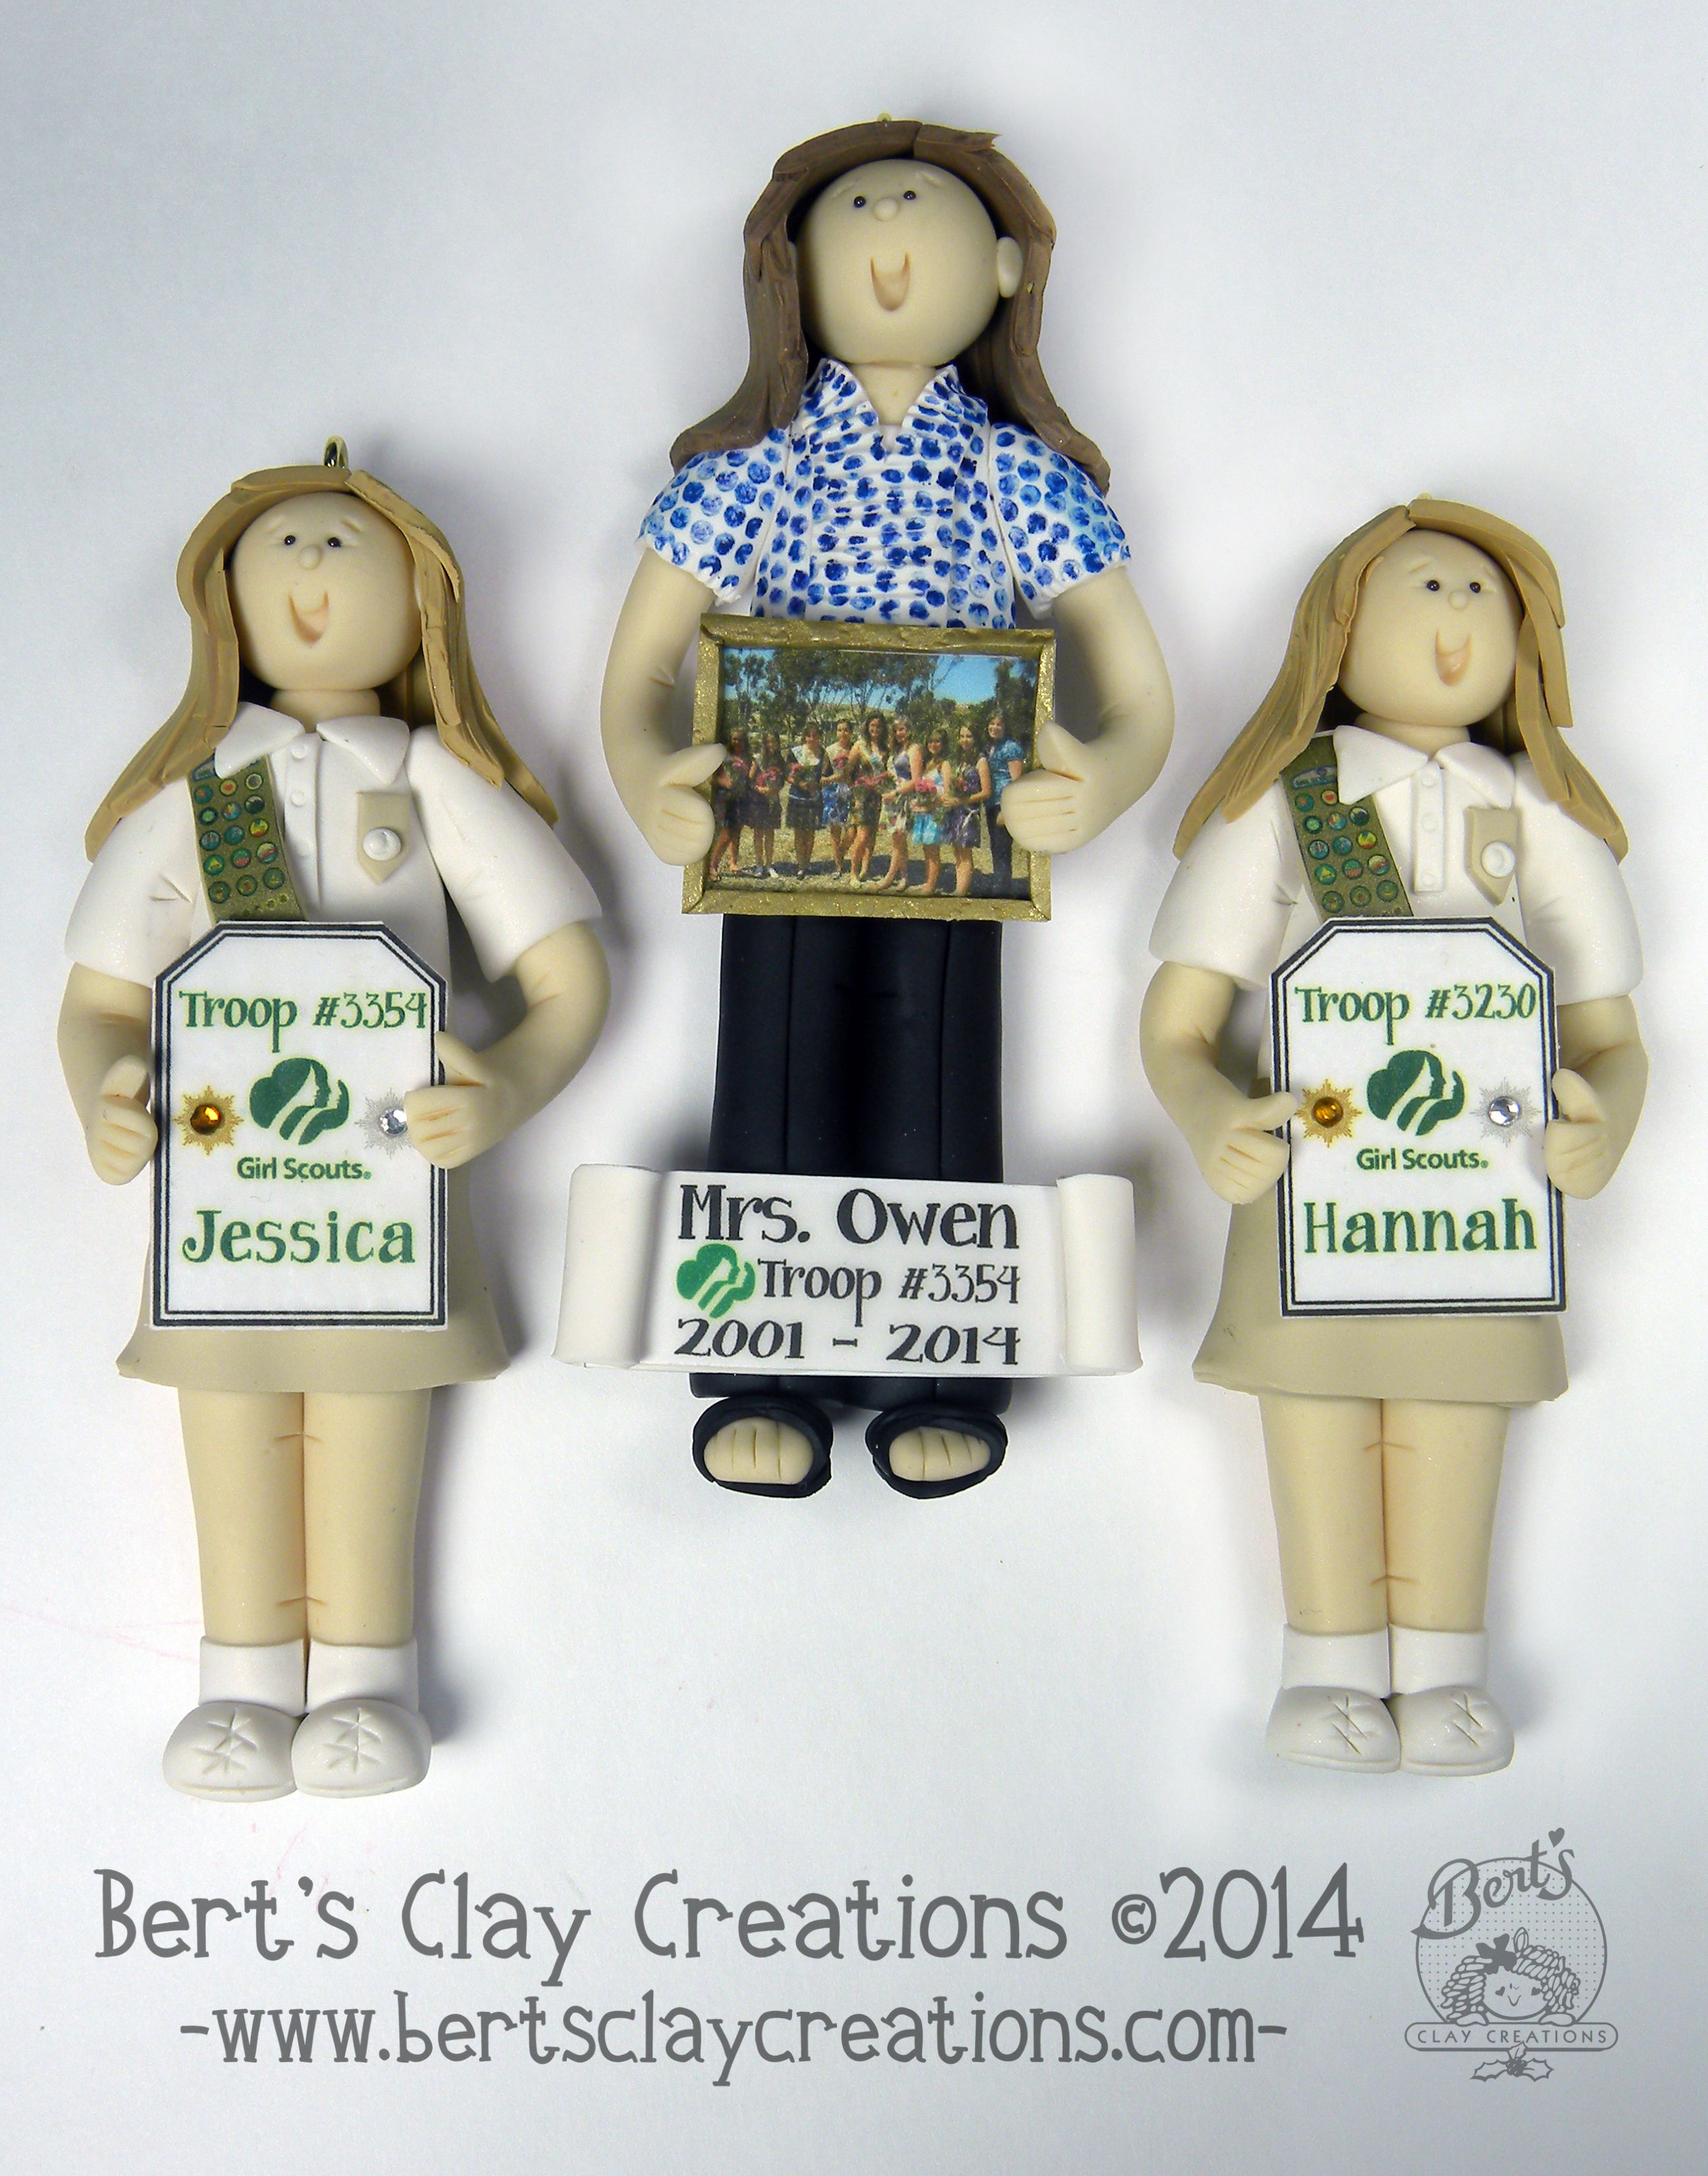 Wedding ornaments 2014 - Custom New Home Engagements Anniversaries Eagle Scout Toppers Girl Scouts Ornaments